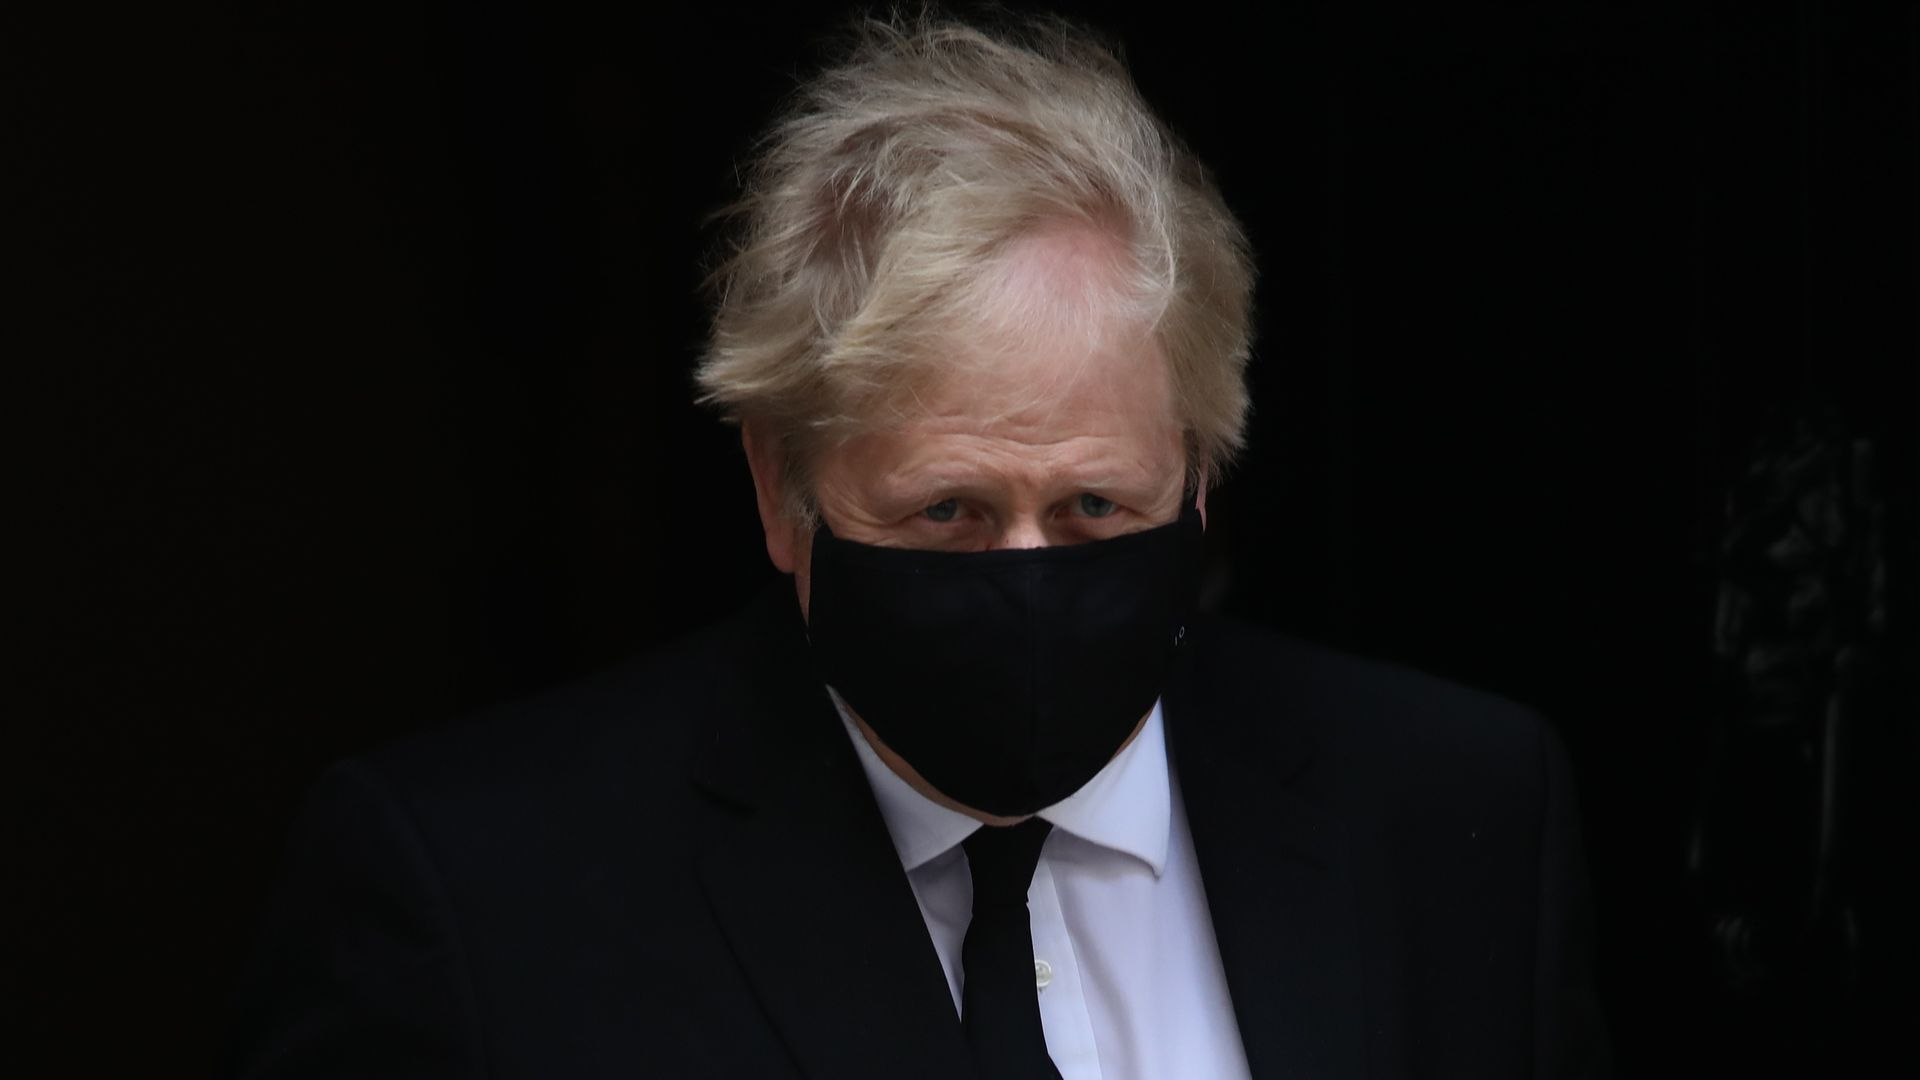 Prime minister Boris Johnson has been accused of lobbying the Premier League on behalf of the Saudi Crown Prince, Mohammed bin Salman - Credit: PA